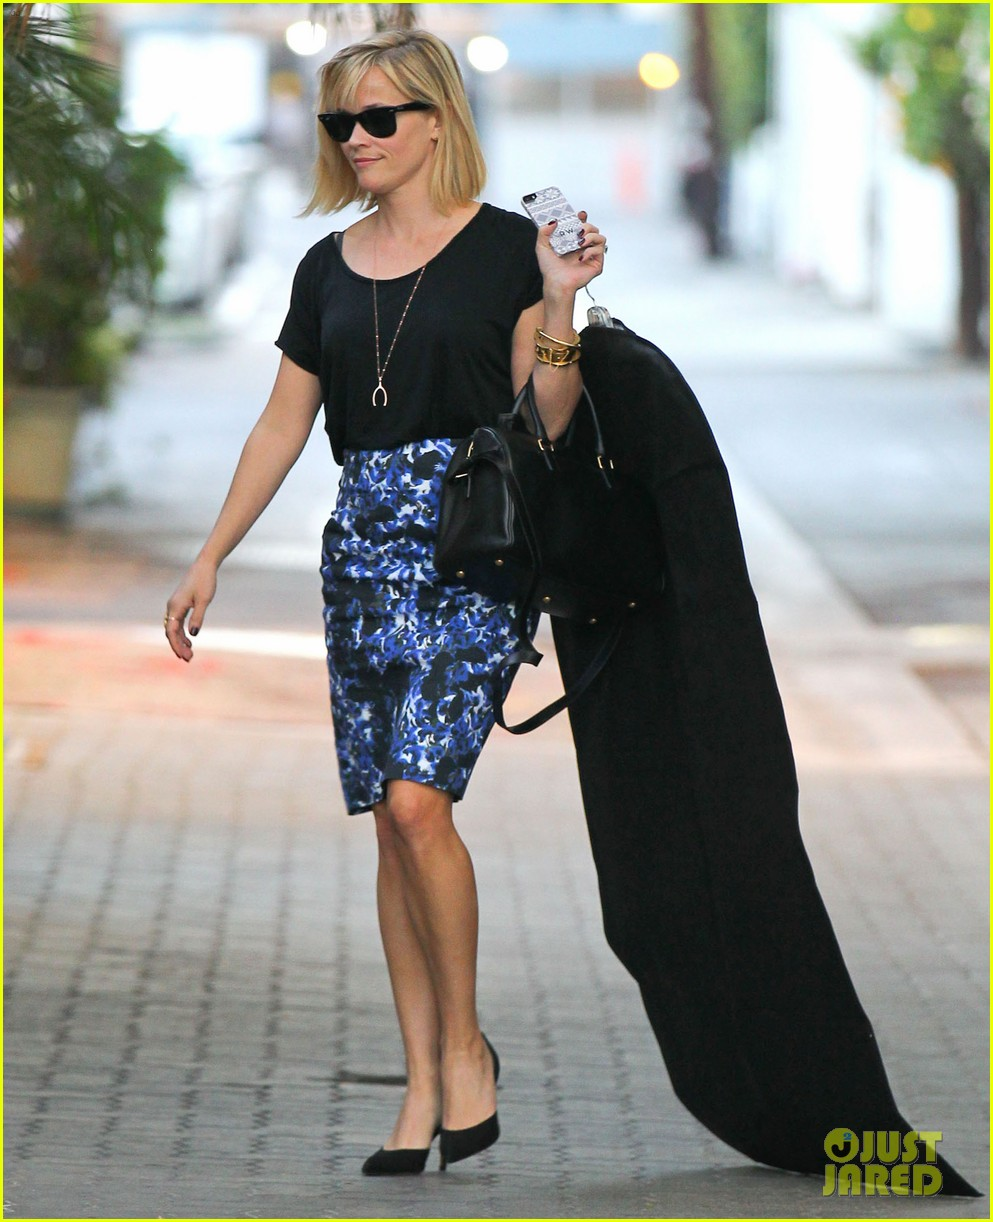 reese witherspoon steps out after the intern news 043033532